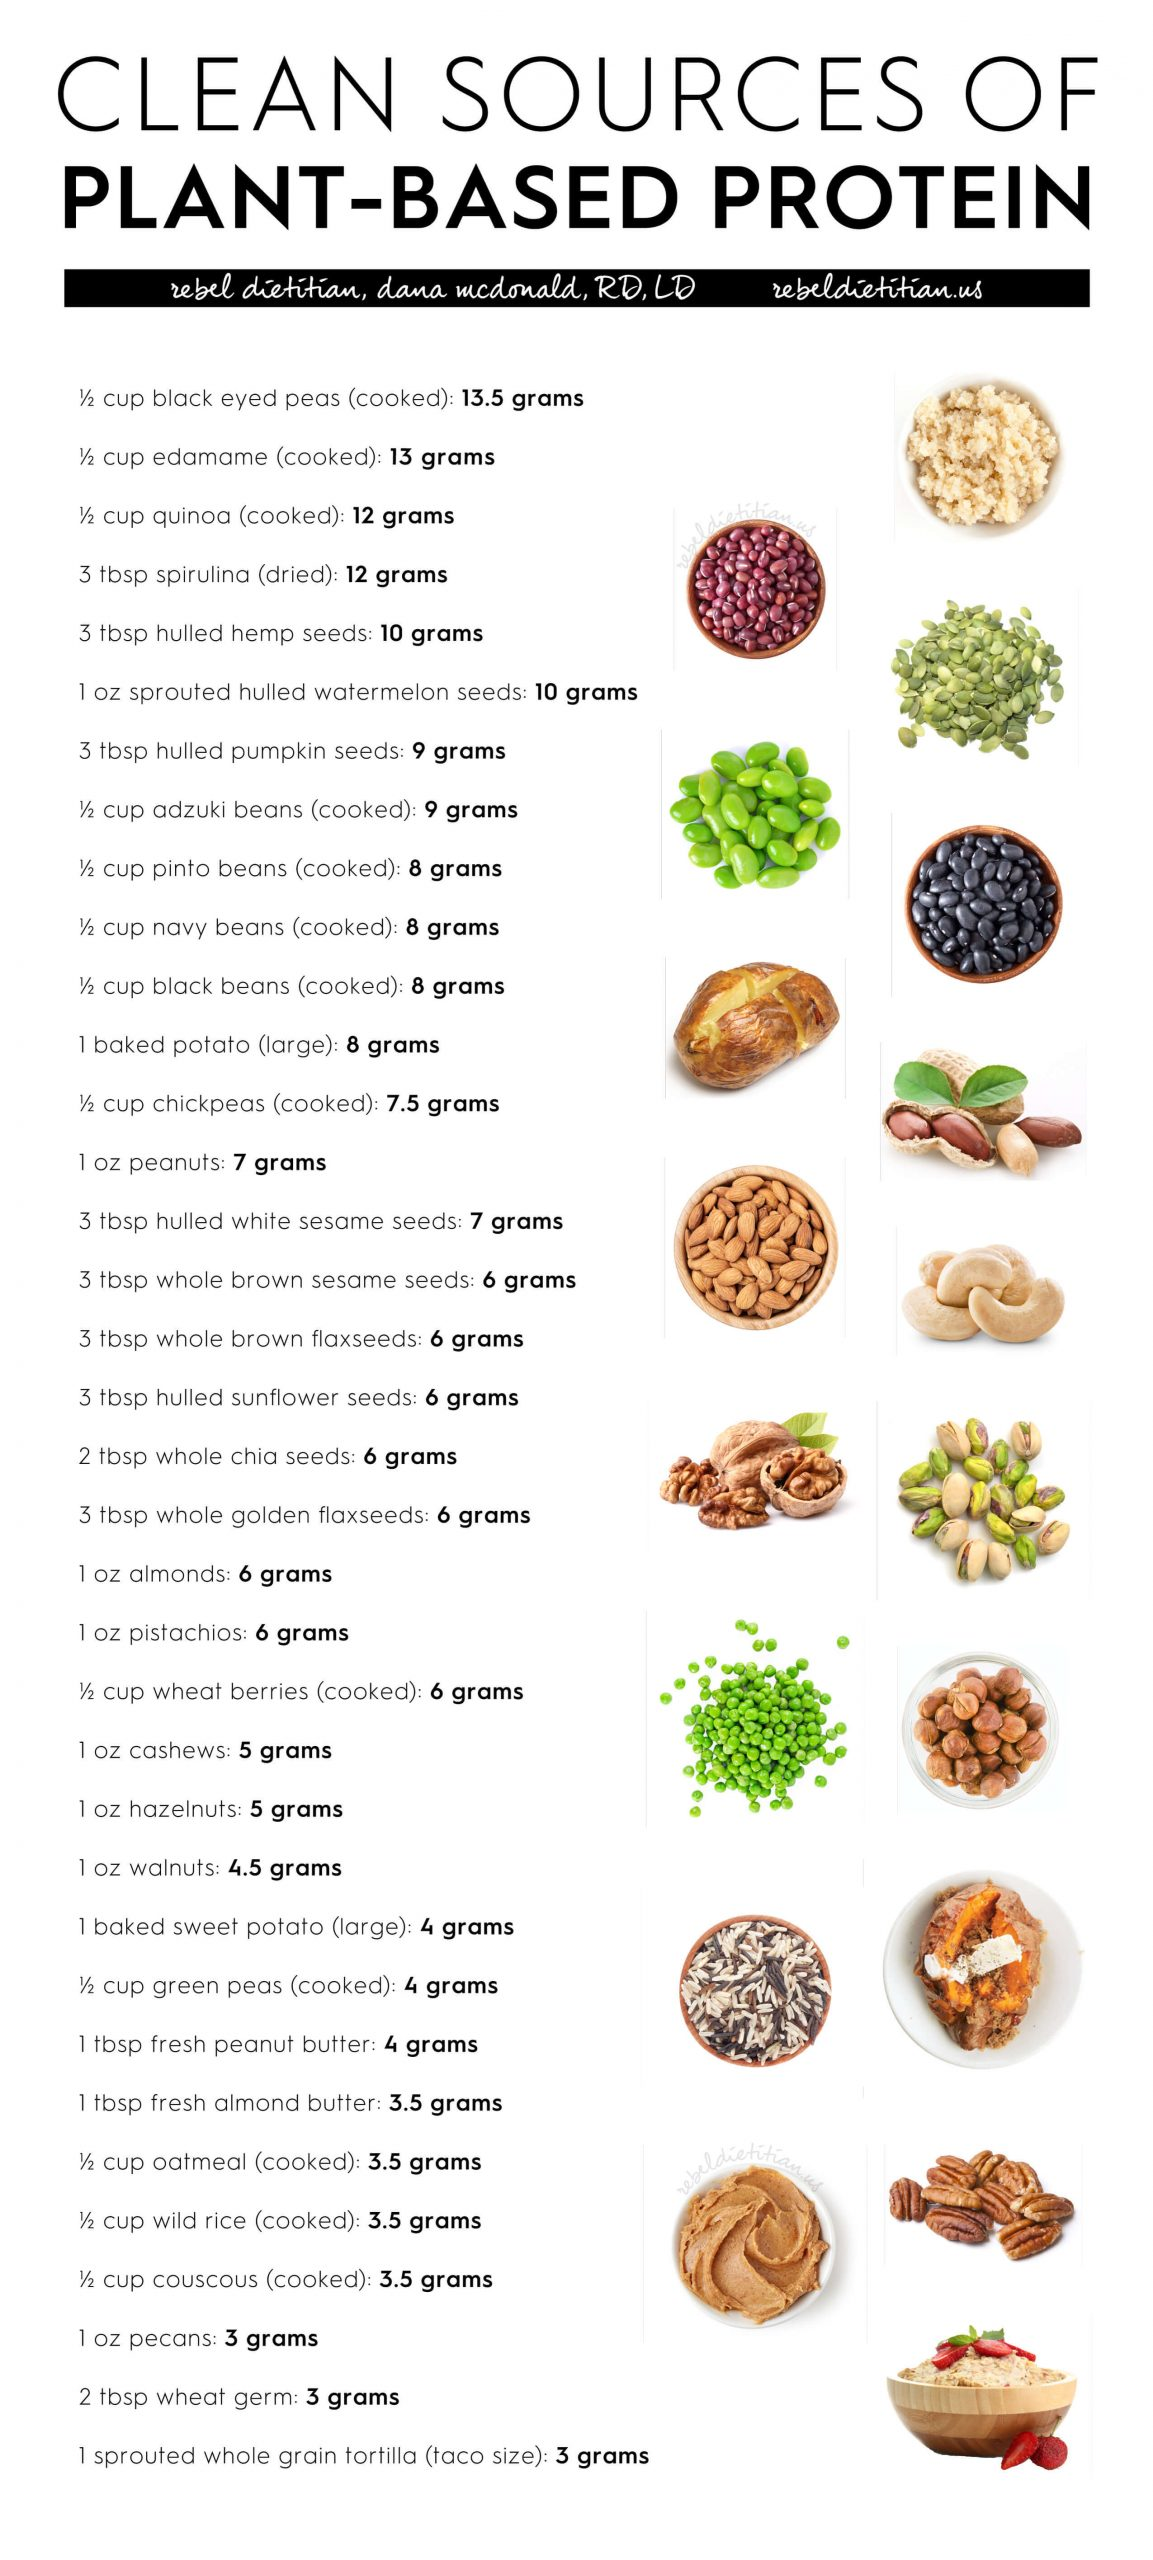 Clean Sources of Plant Based Protein